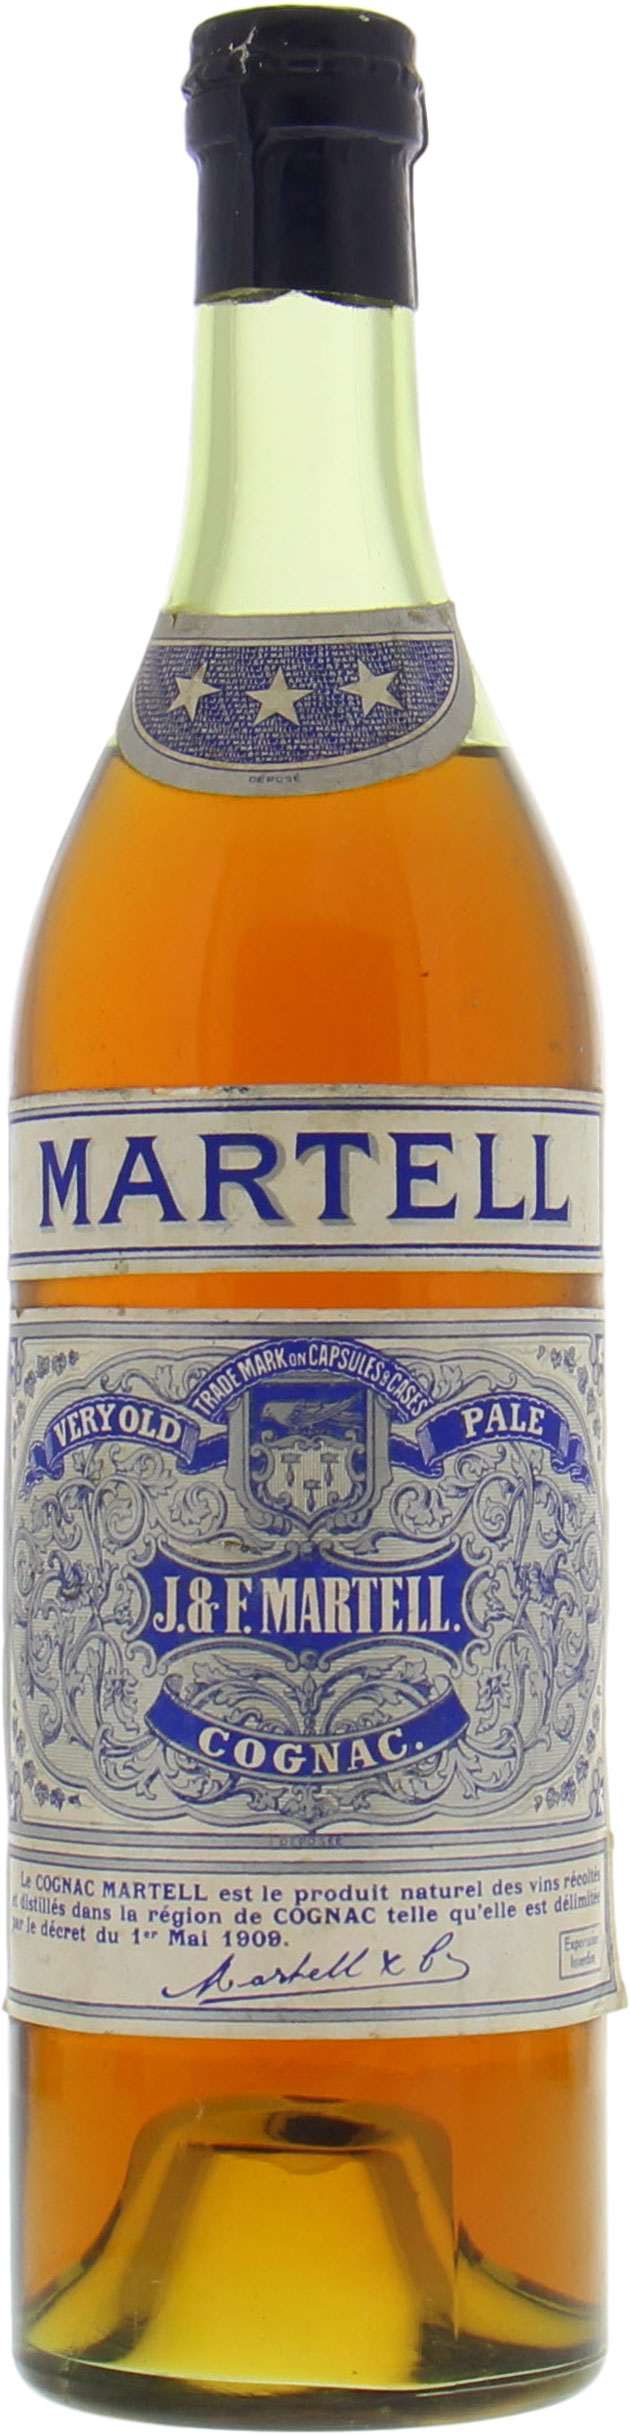 Martell - Very Old Pale (about 1960) NV